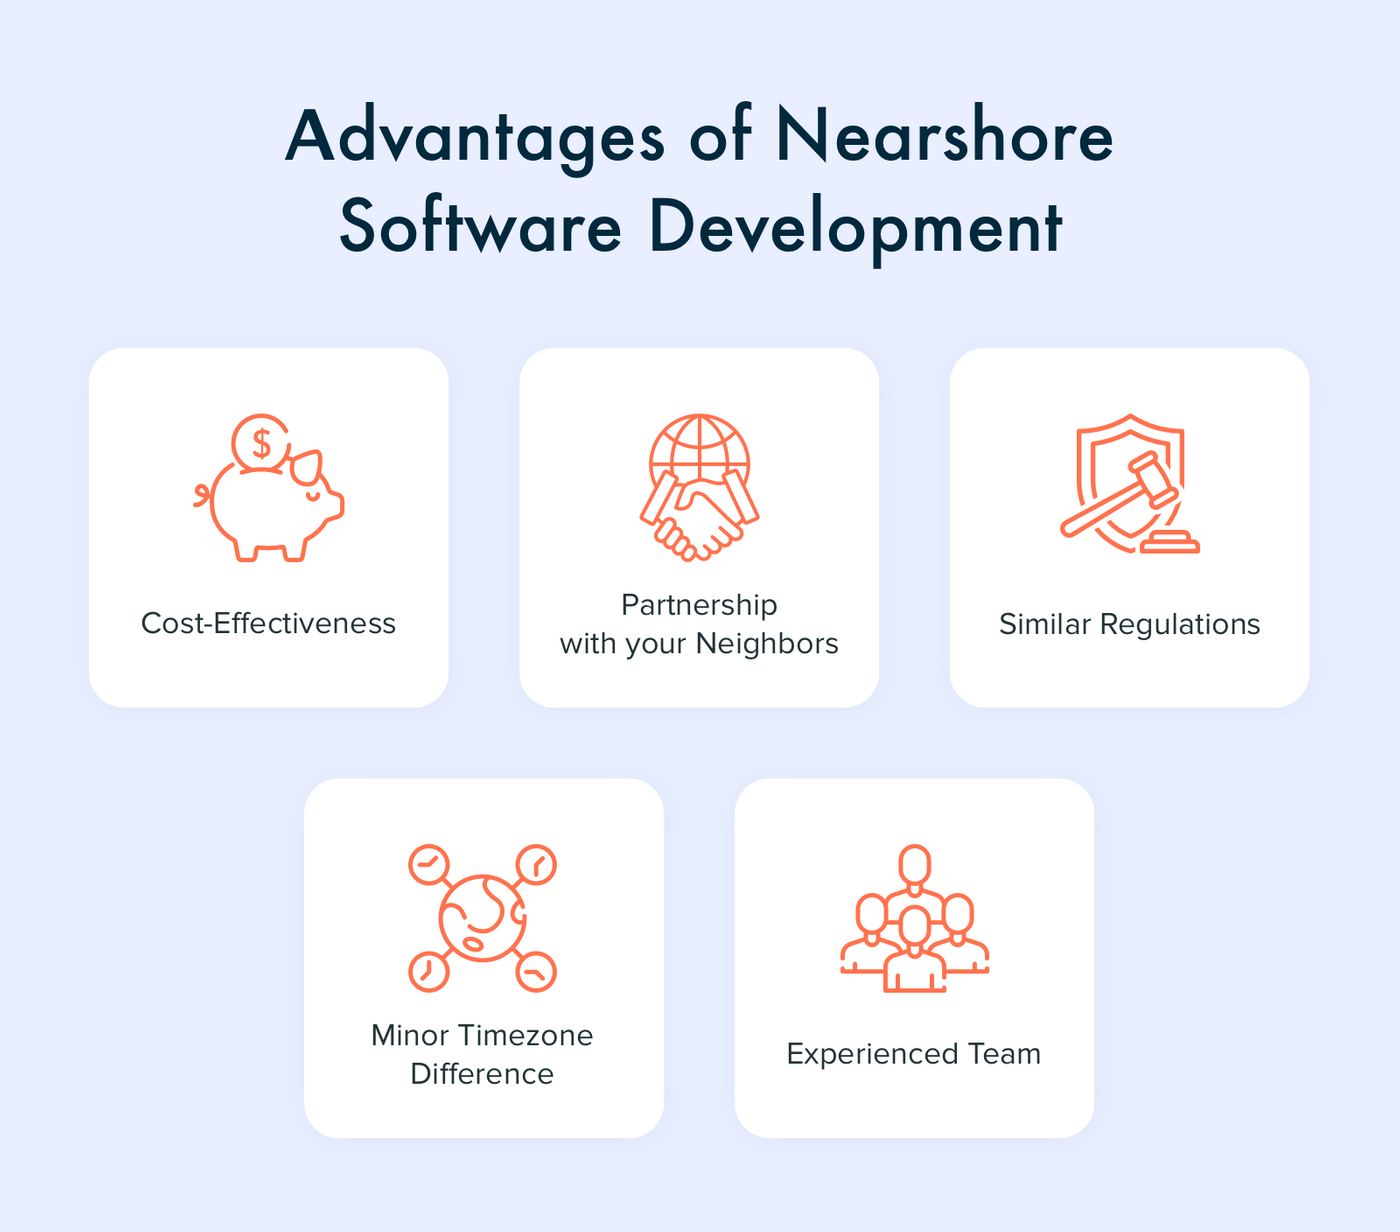 Benefits of Nearshore Software Outsourcing